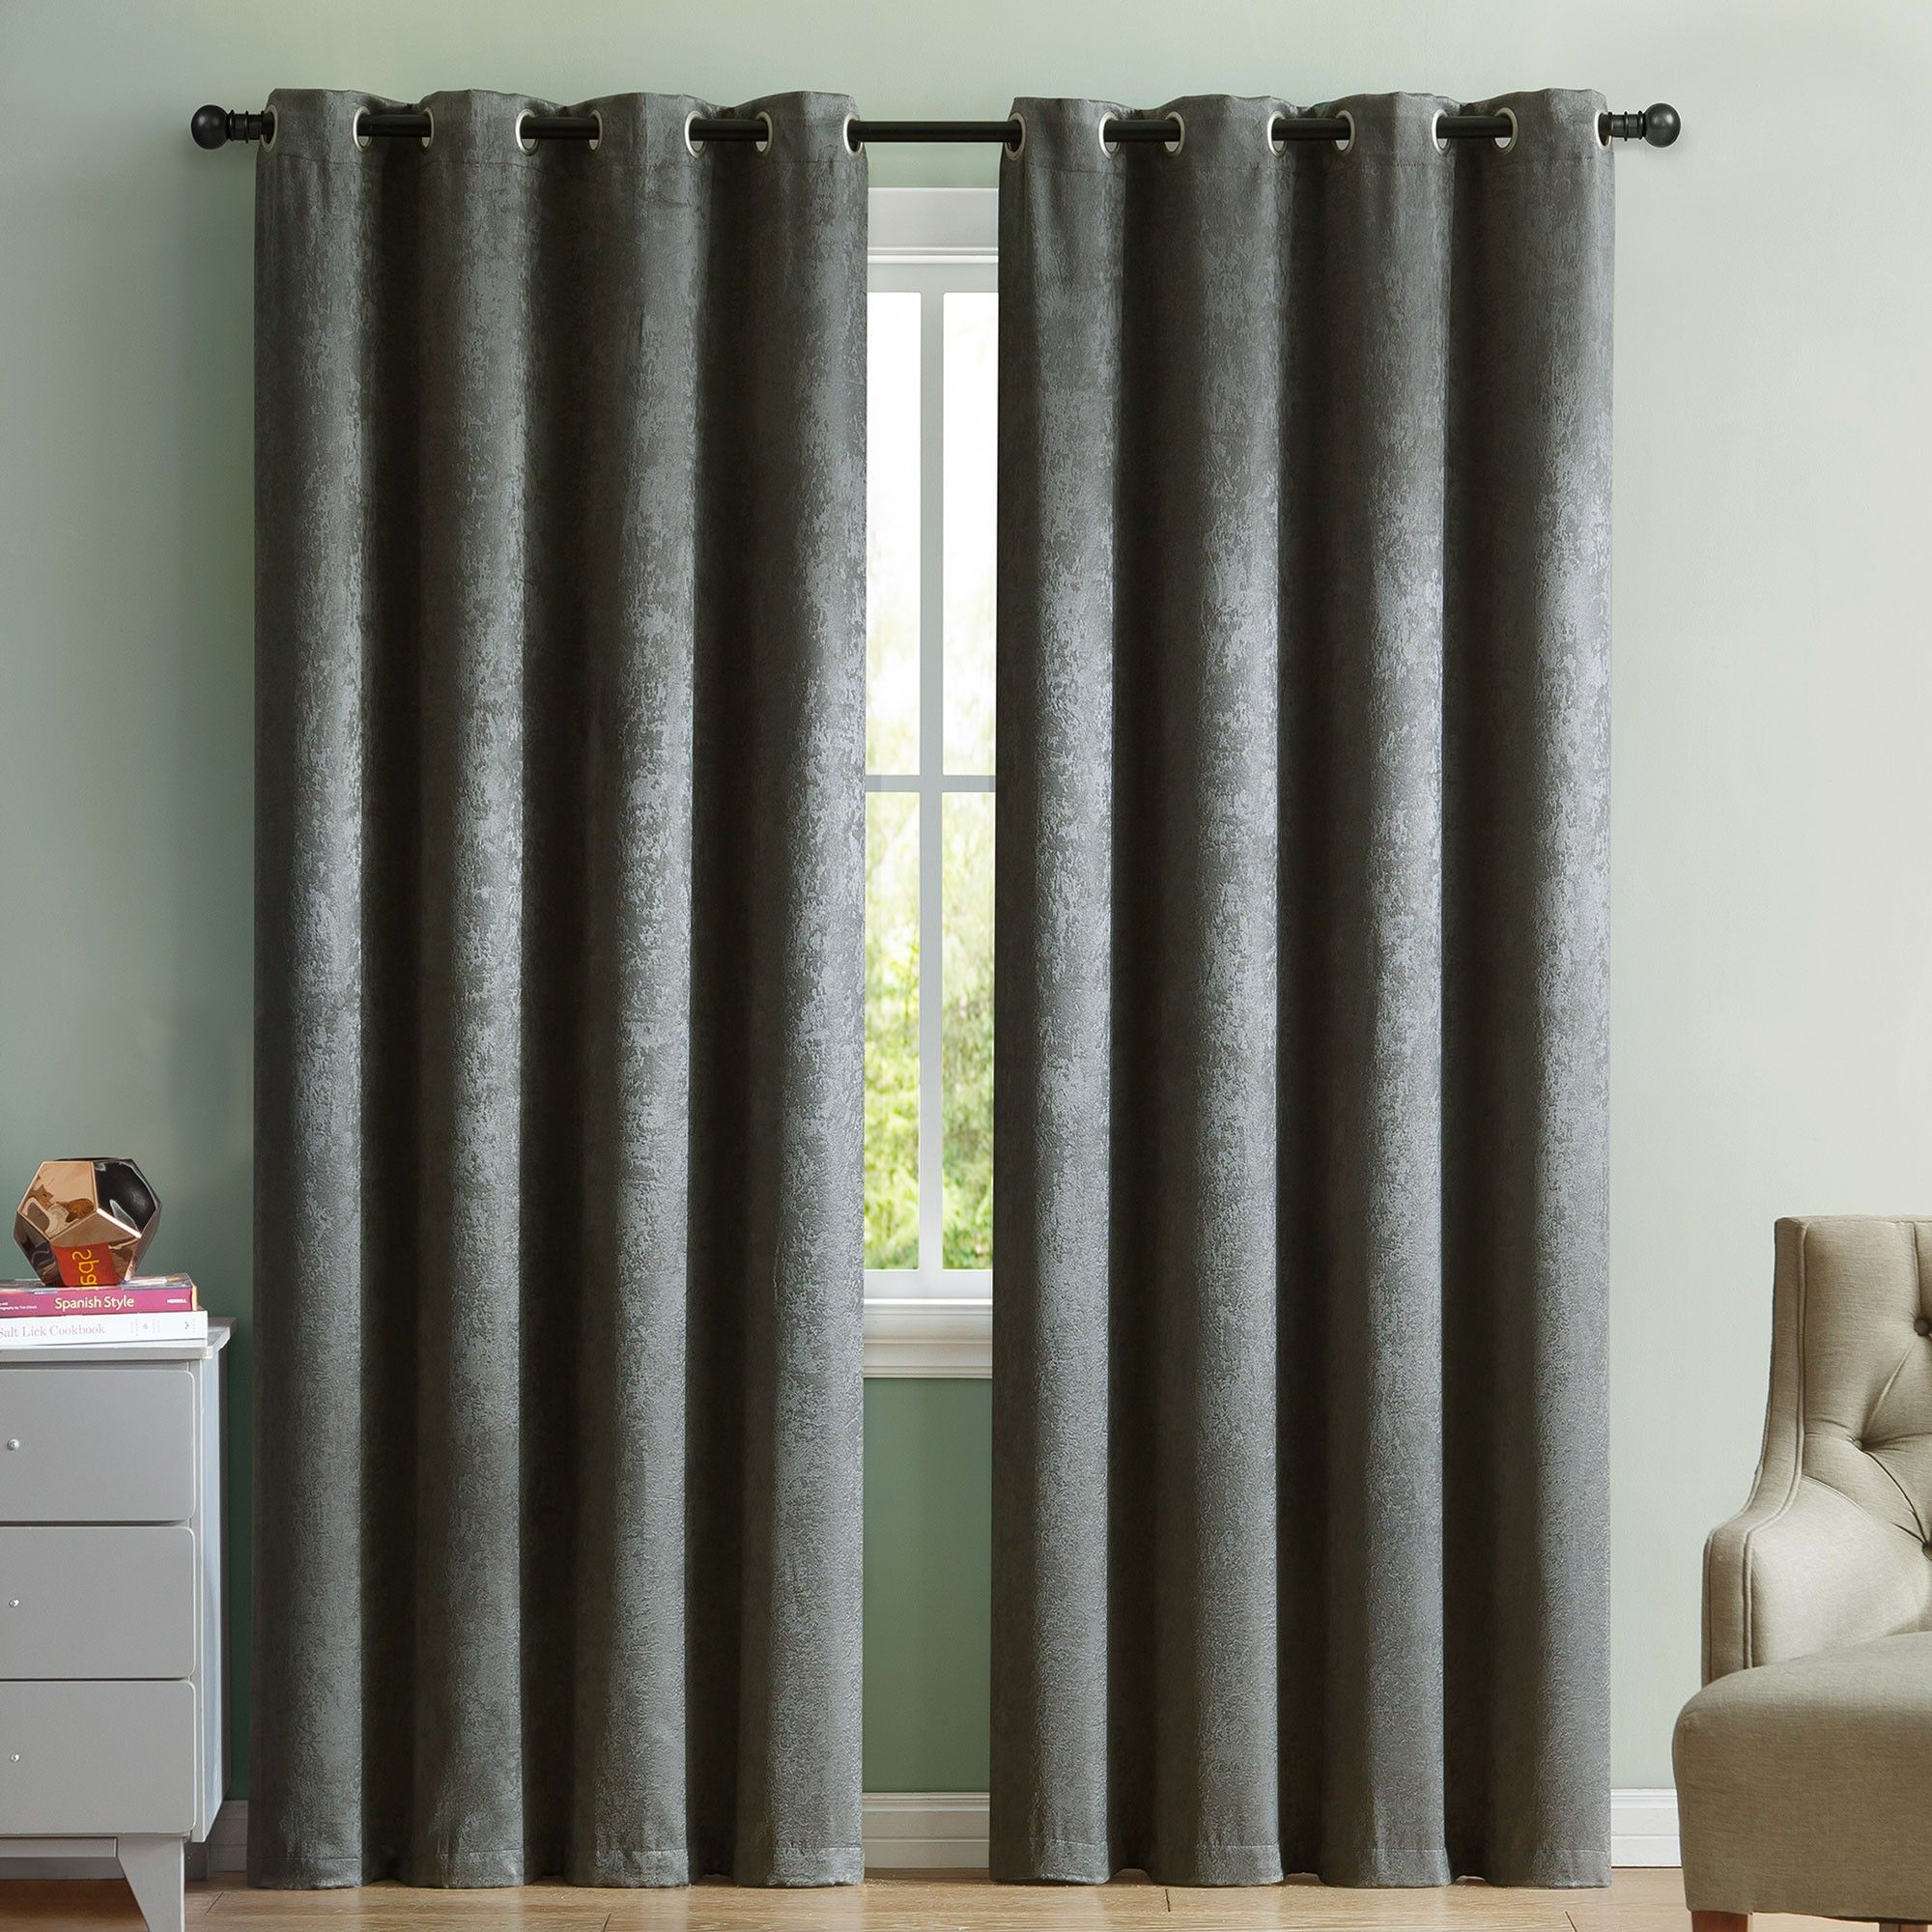 designer the which design top and on your curtain home curtains shades beautify long drape classed living within blinds photo window inside treatments find with as document room of types part is windows sample for